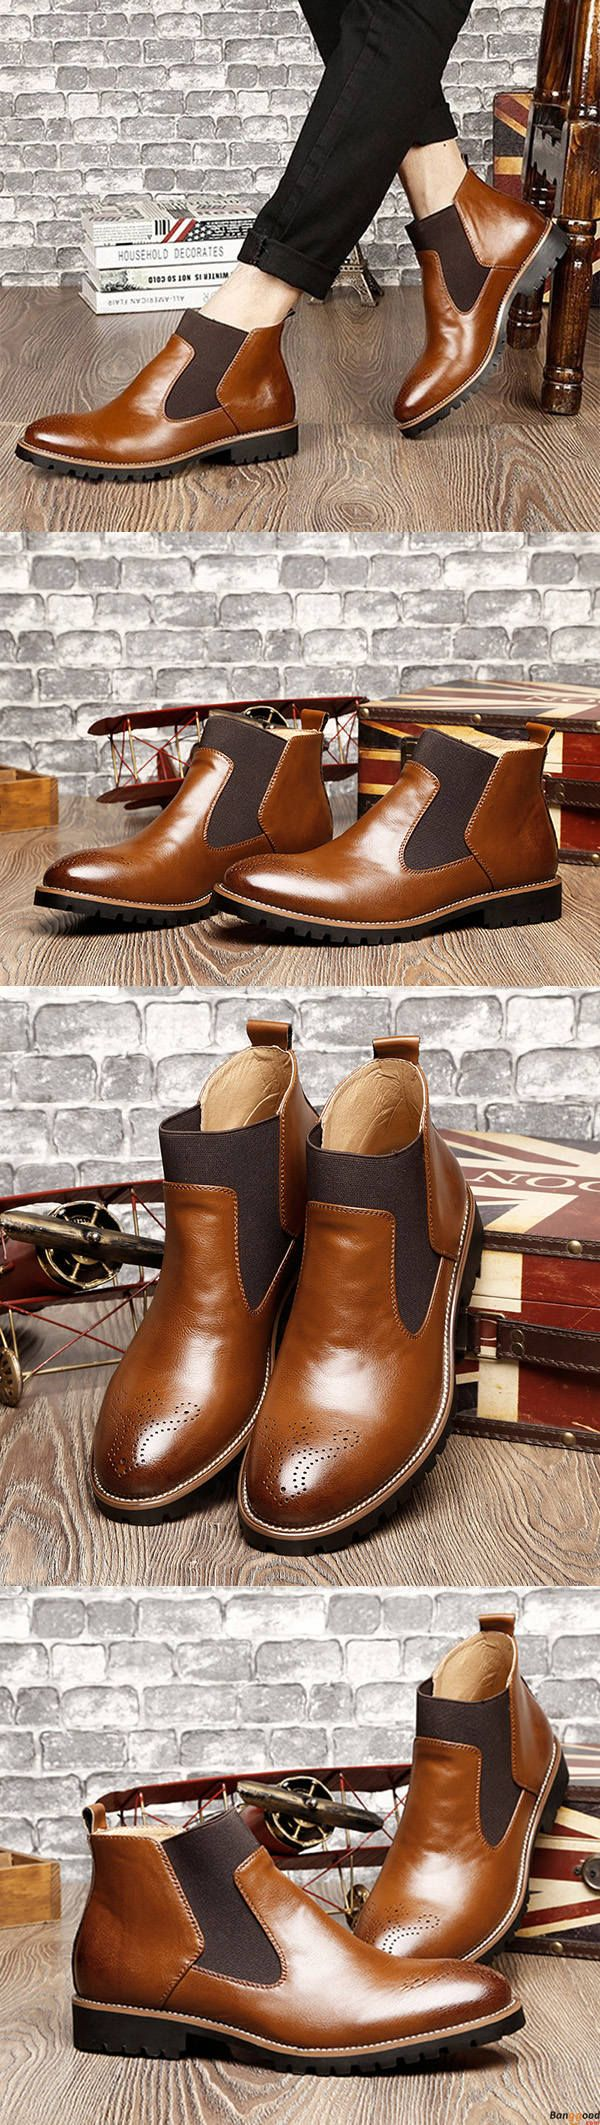 US$54.9+ Free Shipping.  3 colors available.  Men Comfortable Genuine Leather Elastic Band Ankle Boots . Men formal shoes, short boots, casual comfortable shoes, oxford shoes, boots, Fashion and chic, casual shoes, men's flats, oxford boots,leather short boots, men's style, chic style, fashion style.  Shop at banggood with super affordable price. #men'sshoes#men'sstyle#chic#style#fashion#style#wintershoes#casual#shoes#casualshoes#boots#oxfordshoes#loafers#flats#shortboots